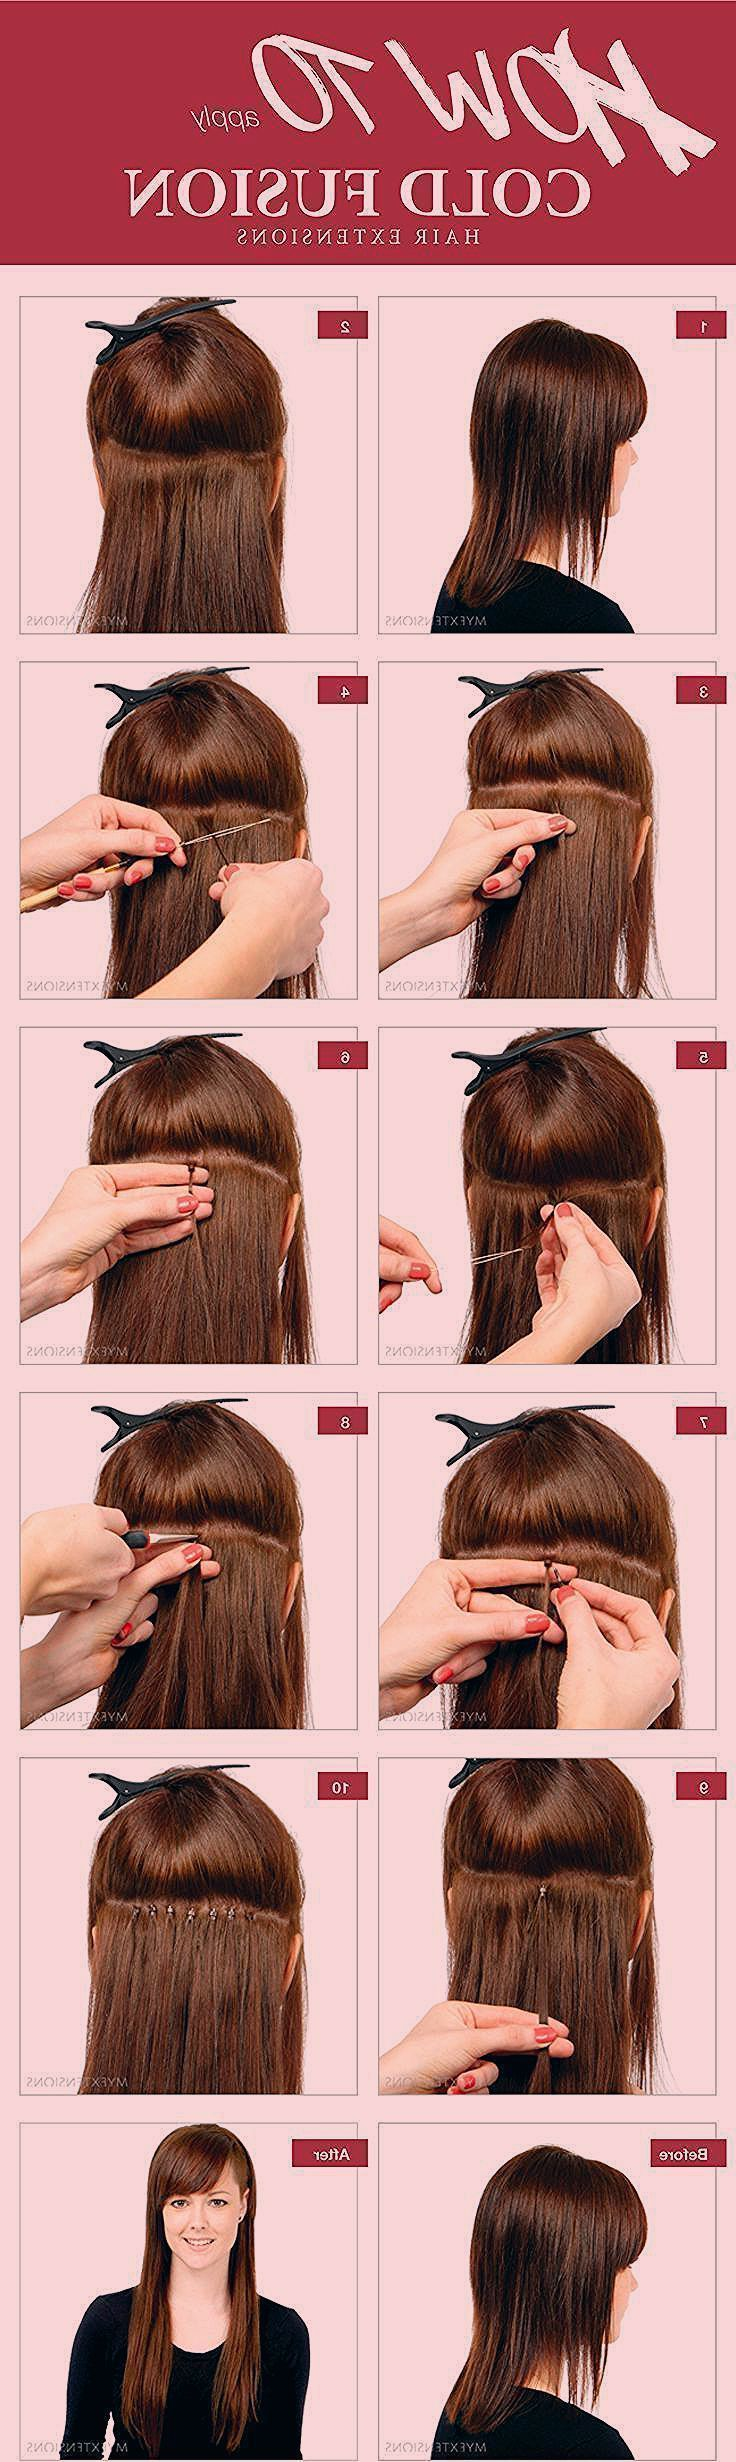 How To Apply Hair Extensions Manual Guide